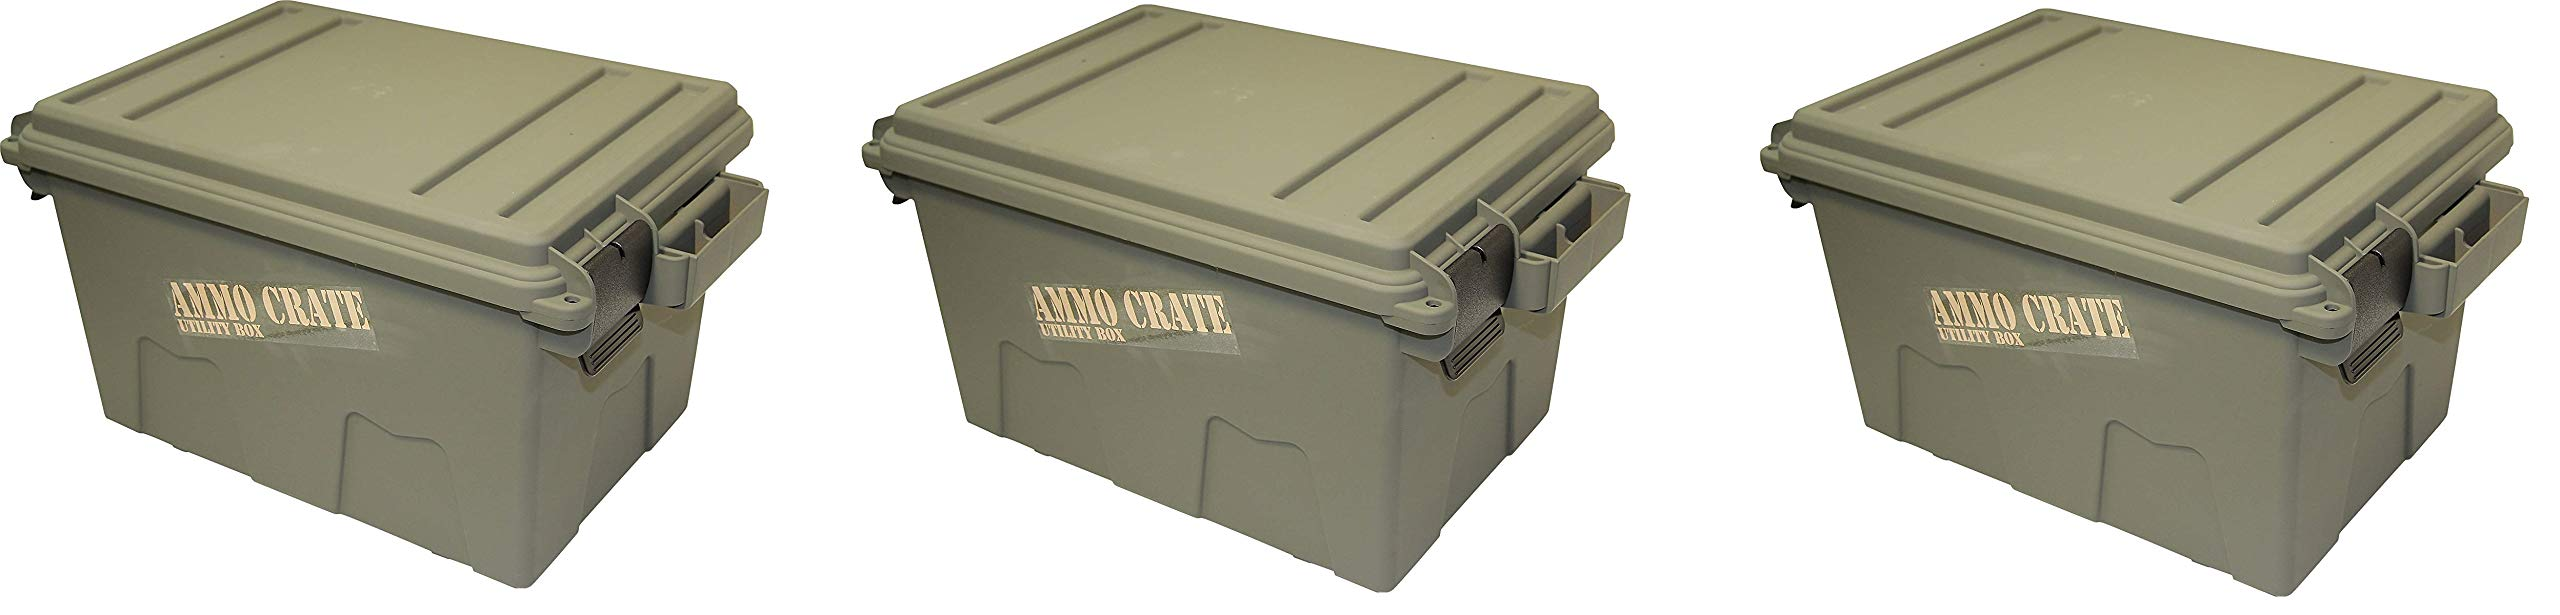 MTM ACR7-18 Ammo Crate Utility Box (Pack of 3)